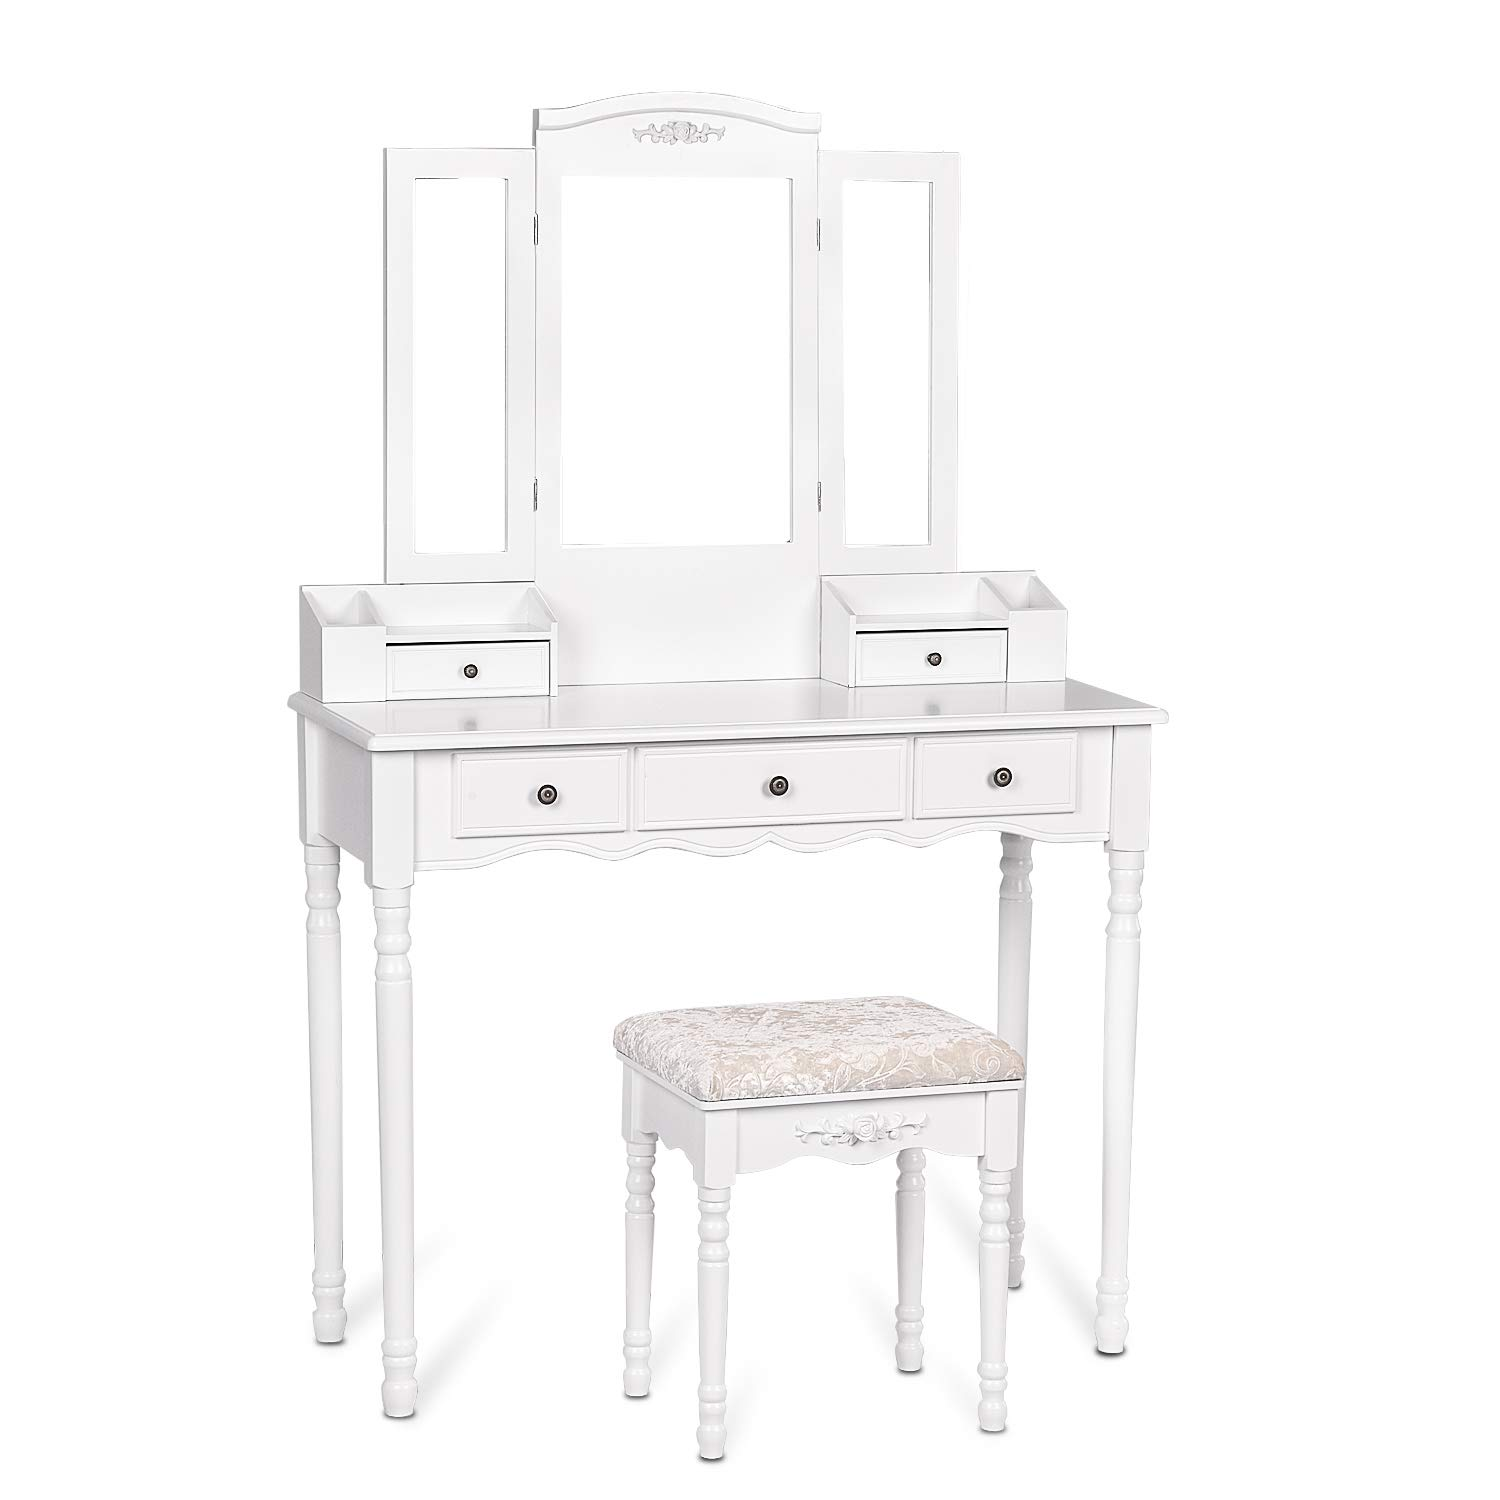 Amolife XL Large Makeup Vanity Set, Dressing Table with Tri-Folding Mirrors, Makeup Desk with 5 Drawers and Cushioned Stool for Women Girls, White